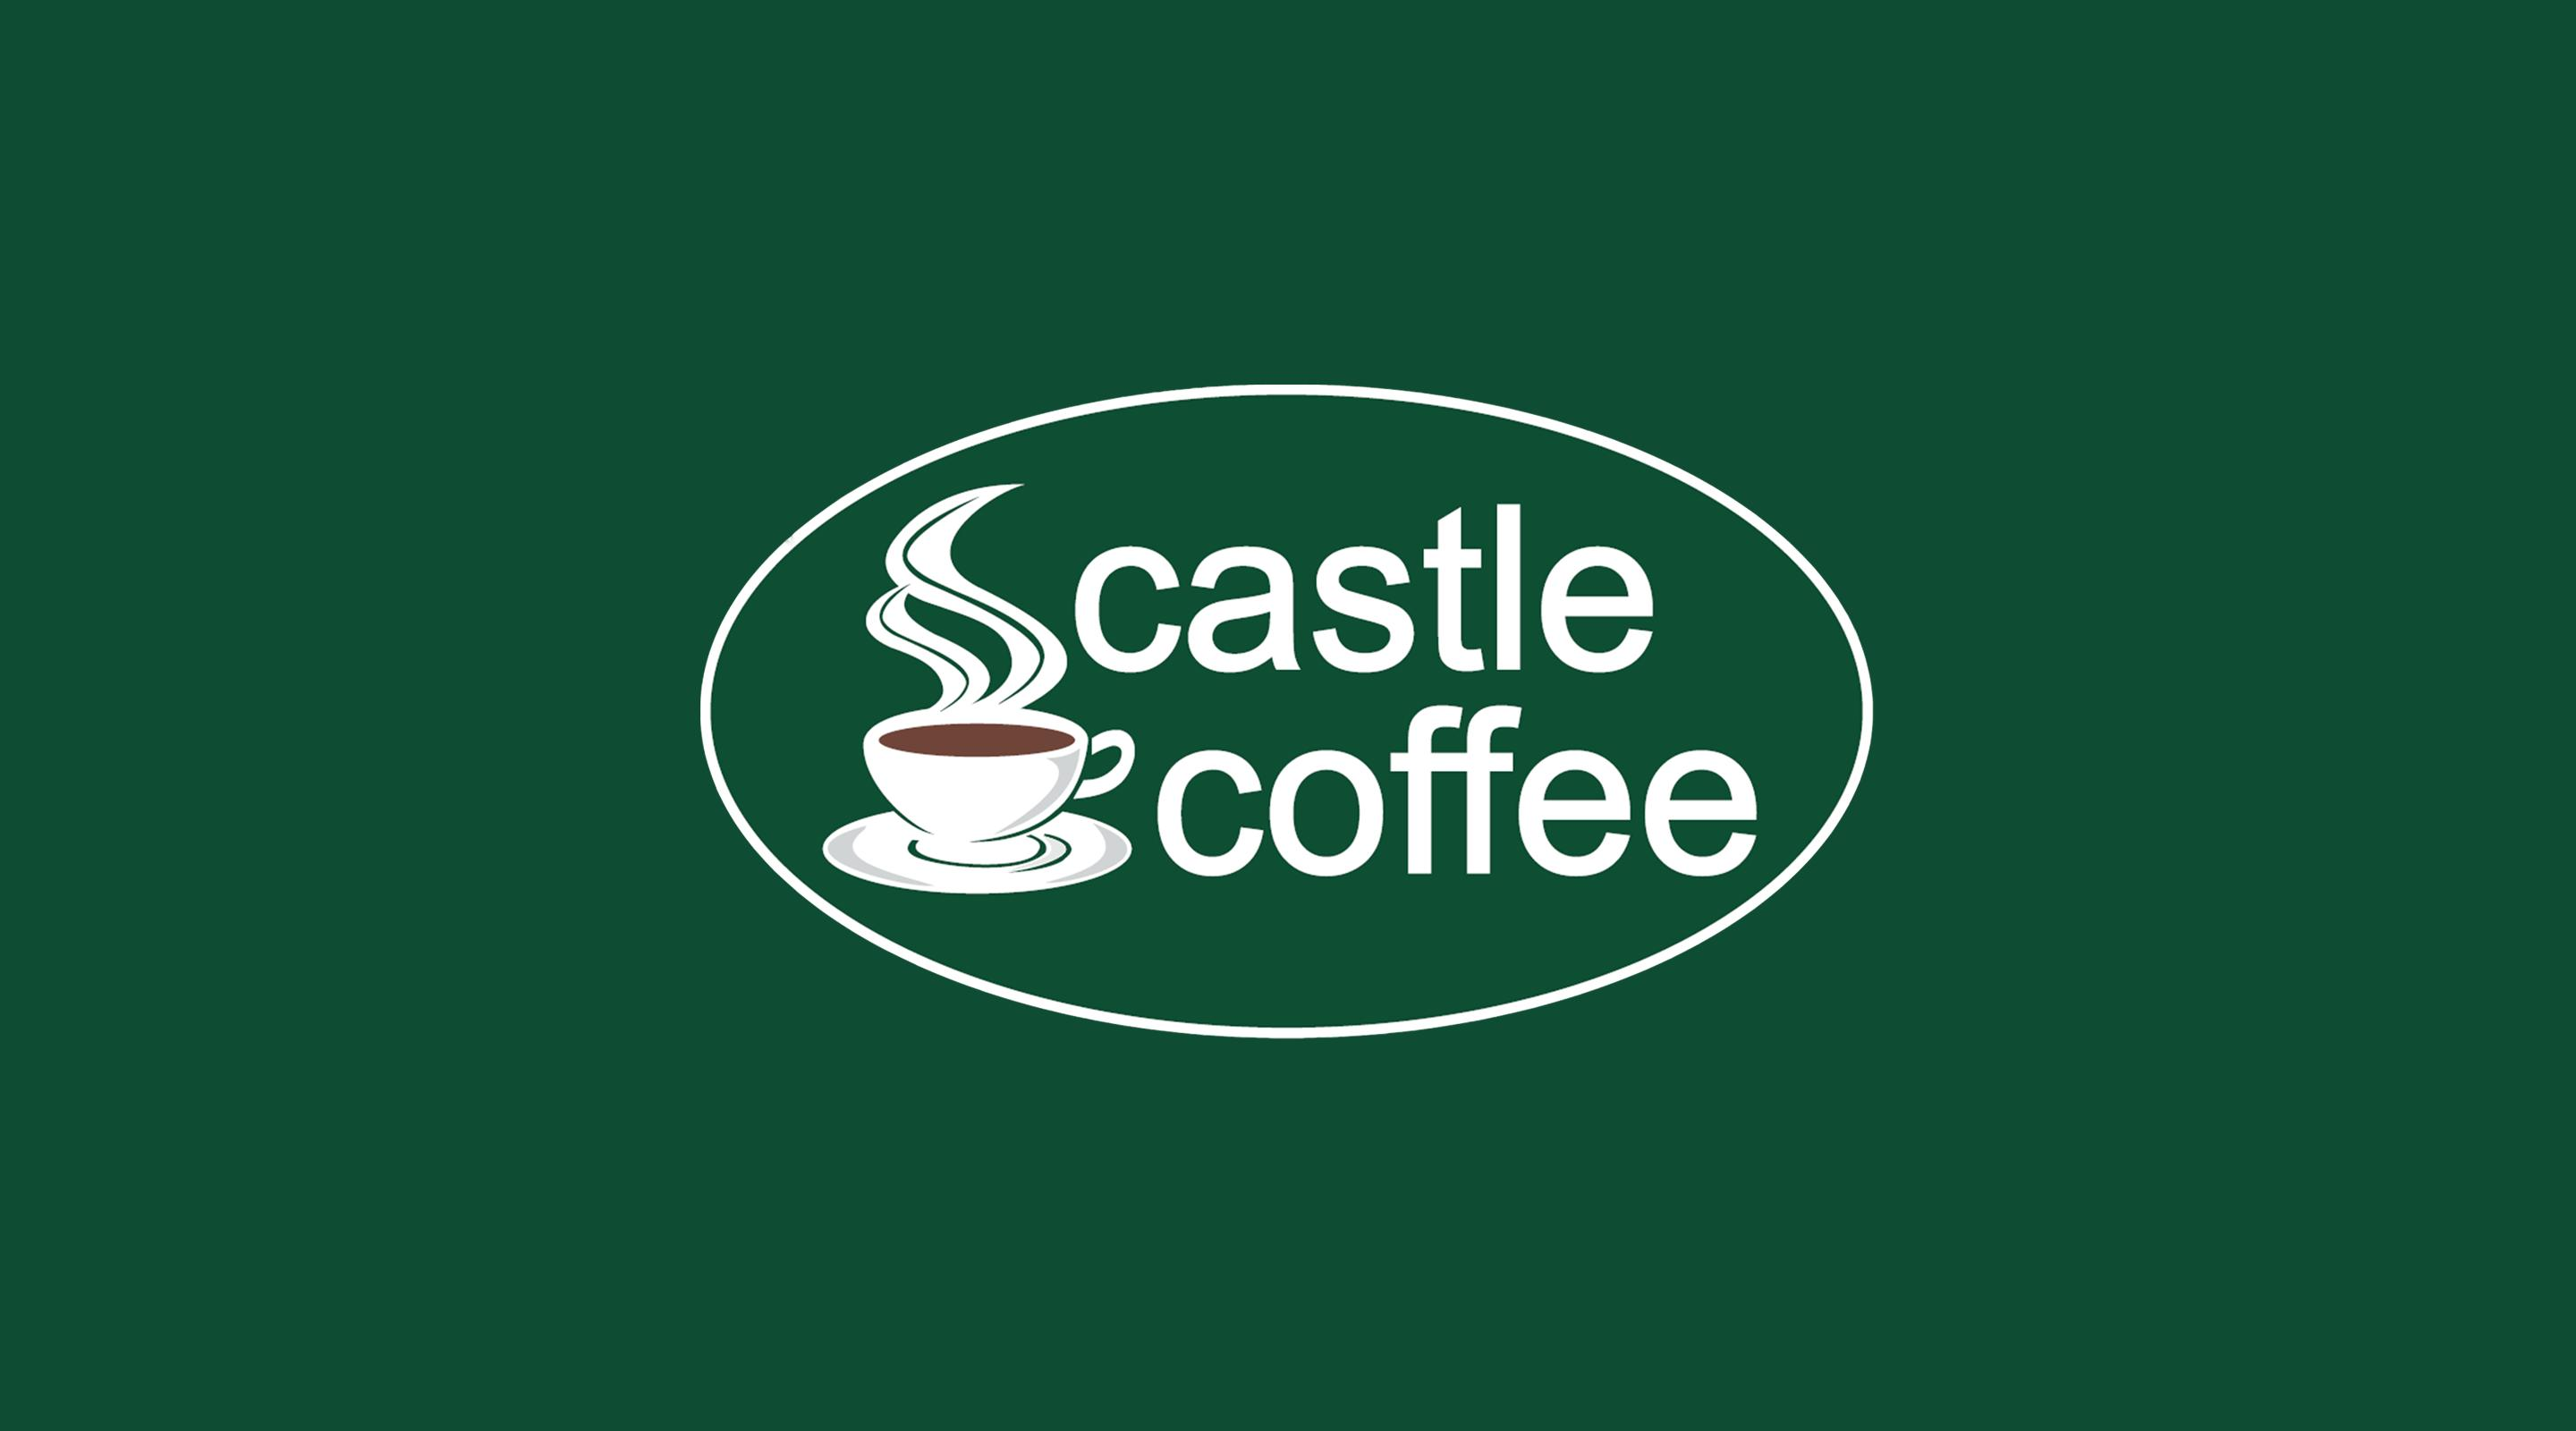 This is an image of our Castle Coffee restaurant logo.